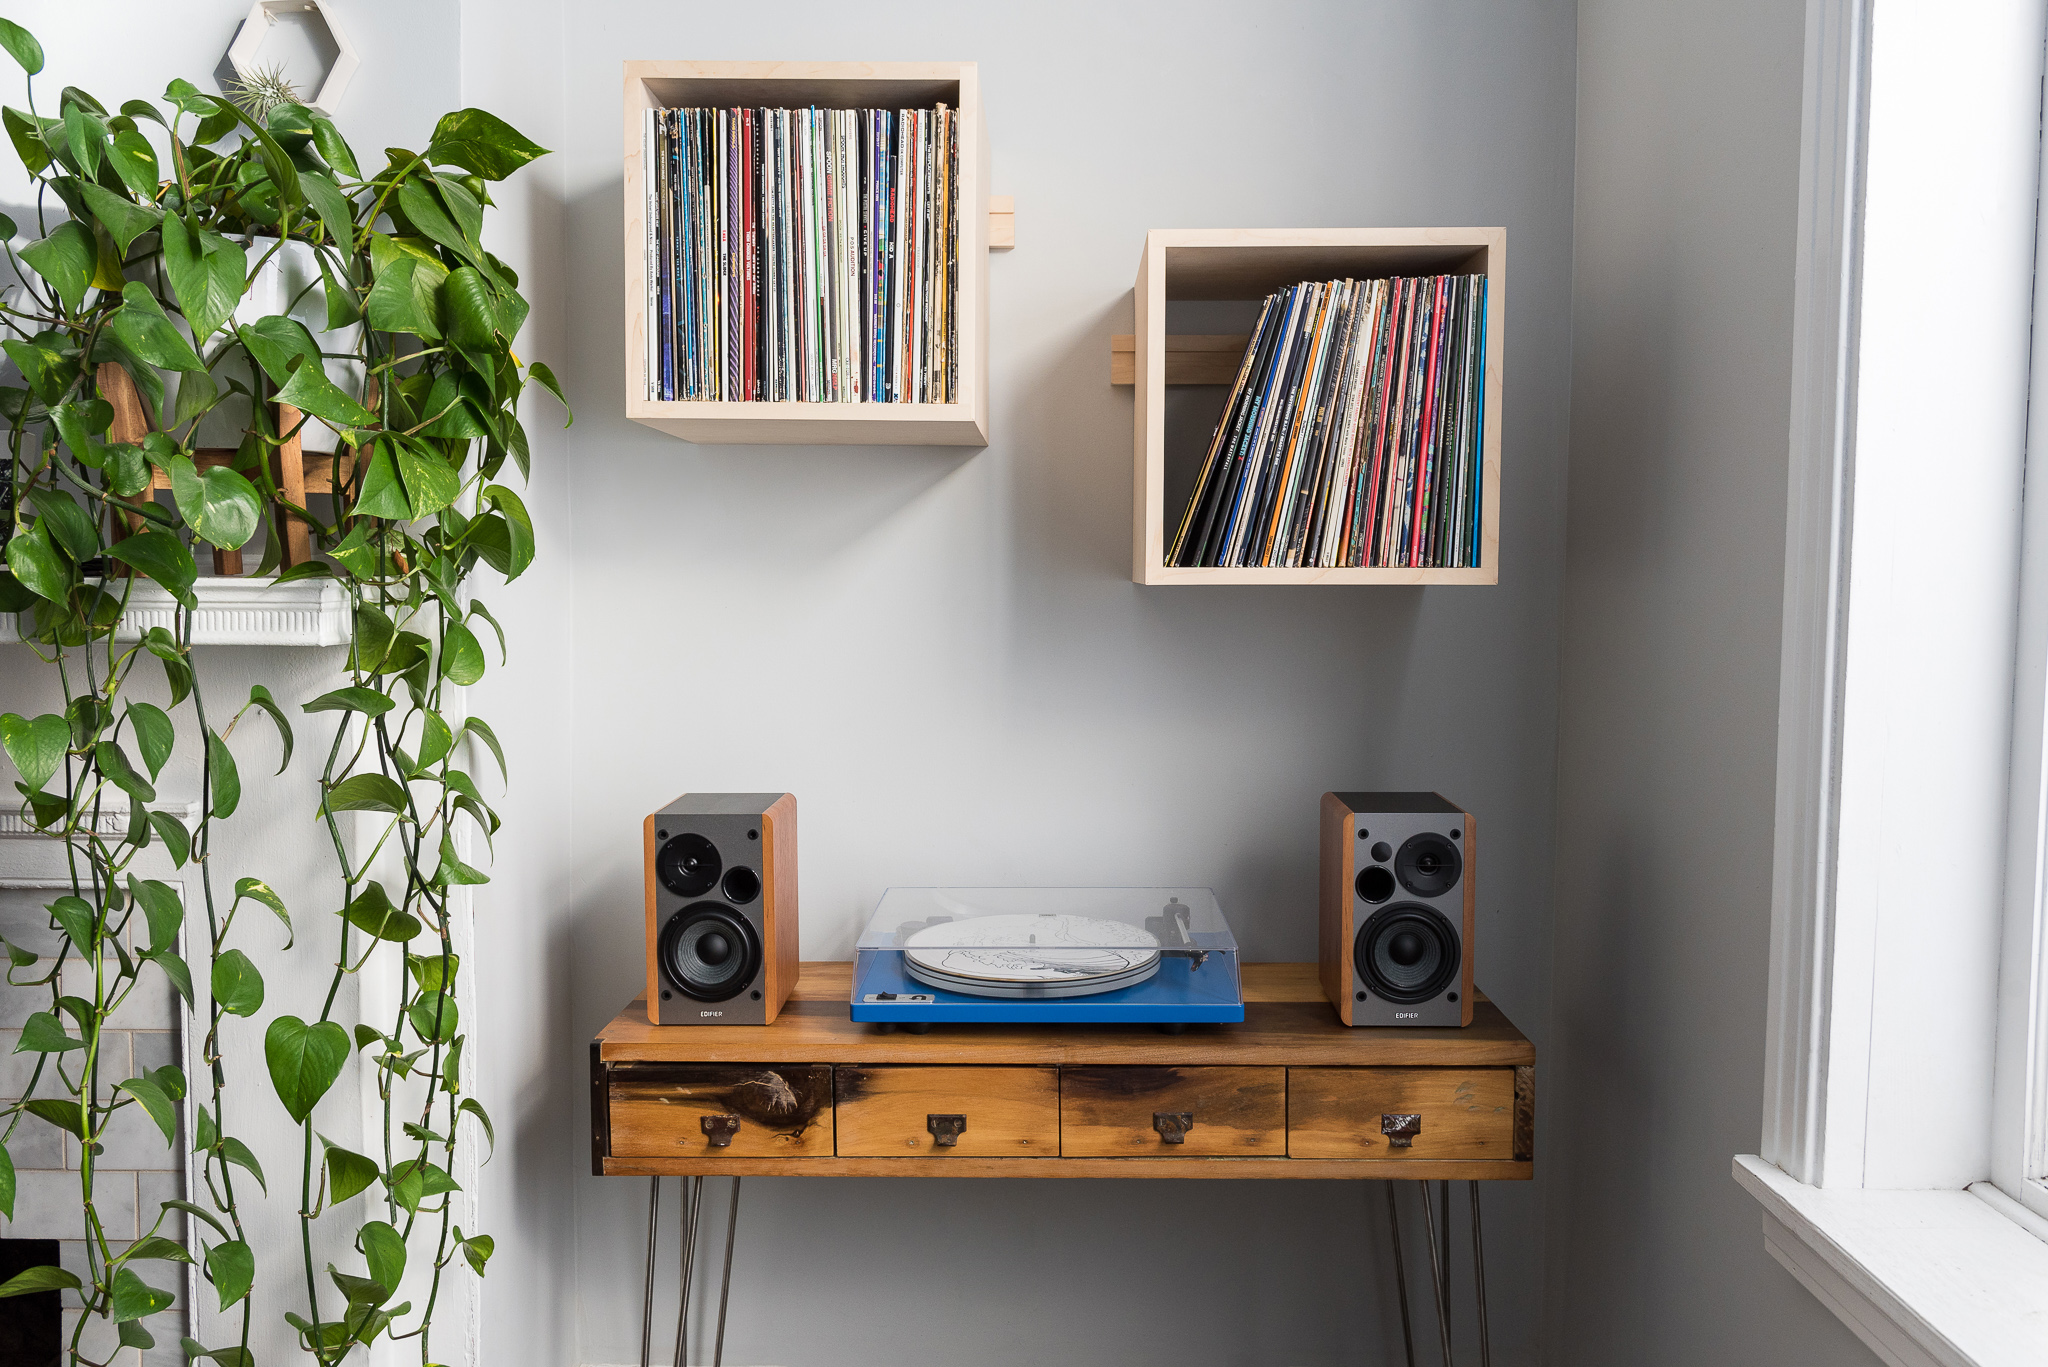 We designed and made our wall-mounted cube shelves and record display racks because we think they are the best.